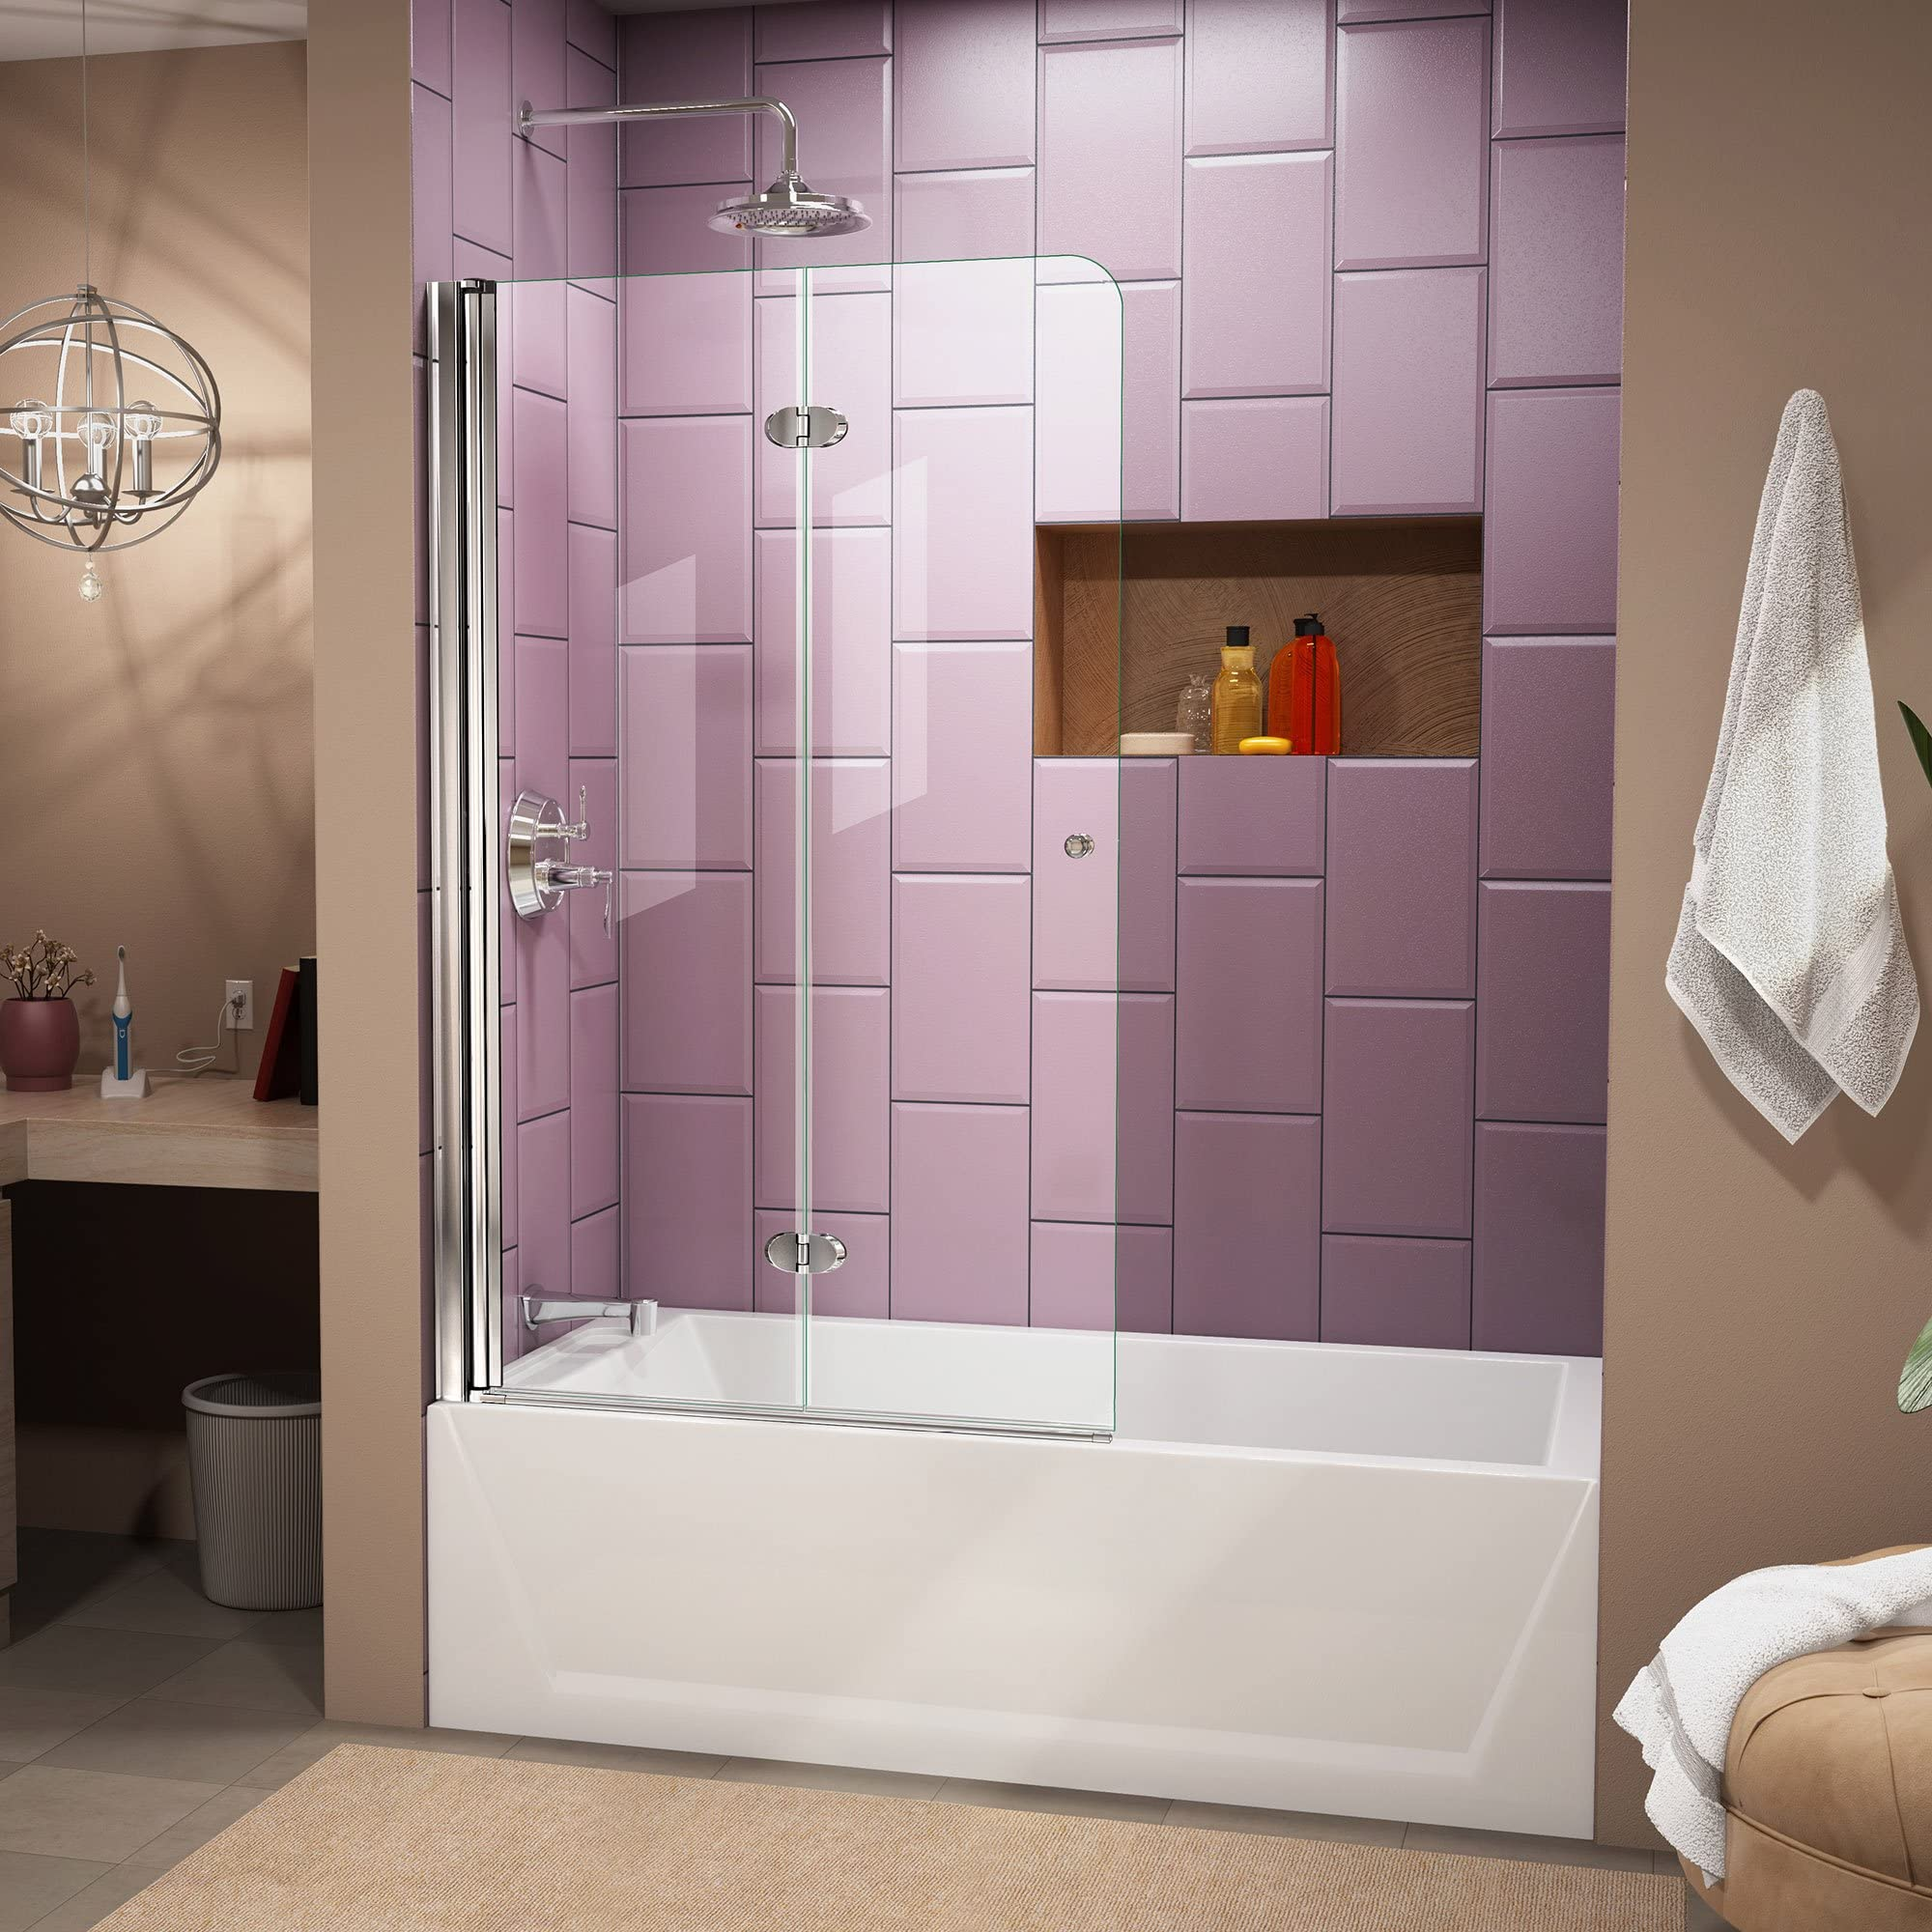 Best sellers  sc 1 st  Amazon.com & Bathtub Sliding Doors | Amazon.com